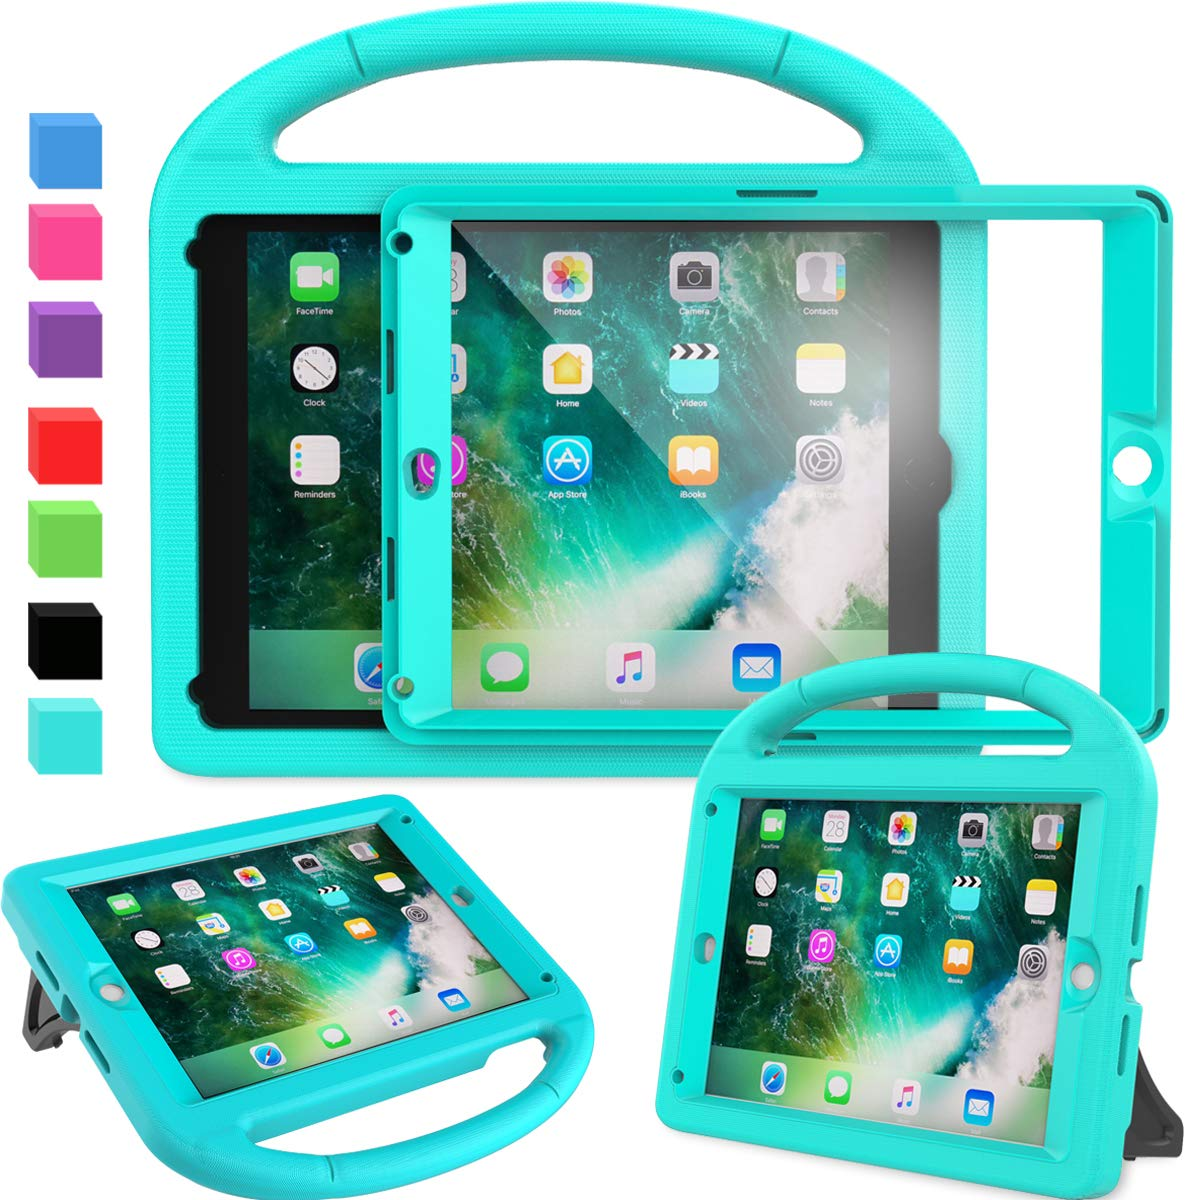 """AVAWO Kids Case Built-in Screen Protector for New iPad 9.7"""" 2018 & 2017 - Shockproof Case with Handle for iPad 9.7 Inch (2018 6th Gen) & 2017 5th Generation - Turquoise"""